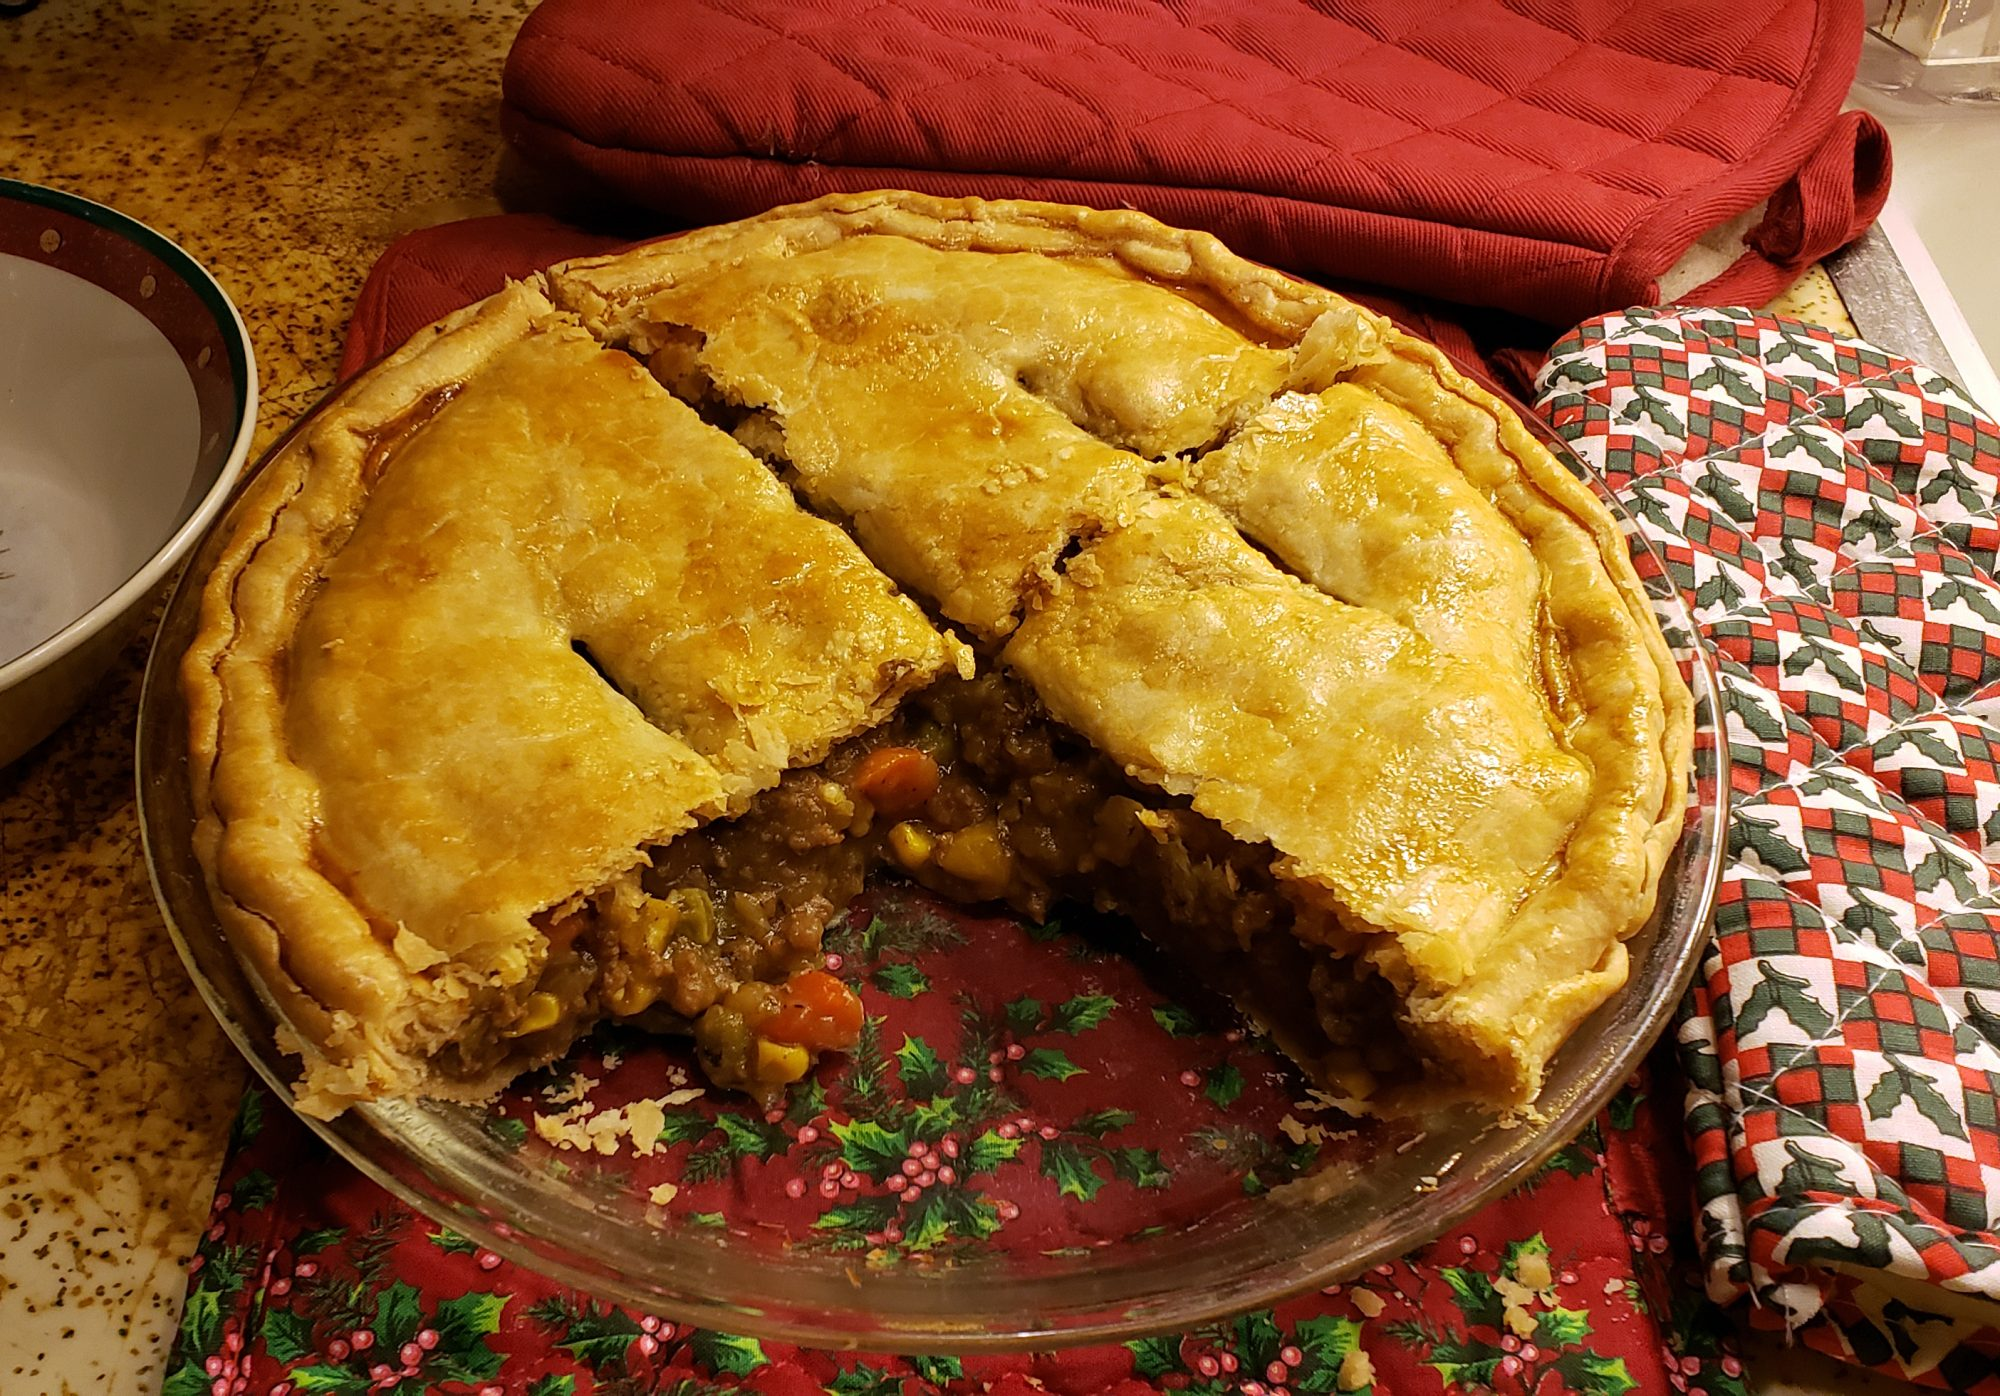 A cut open two-crust meat pie showing a filling of ground beef, carrots, and potatoes